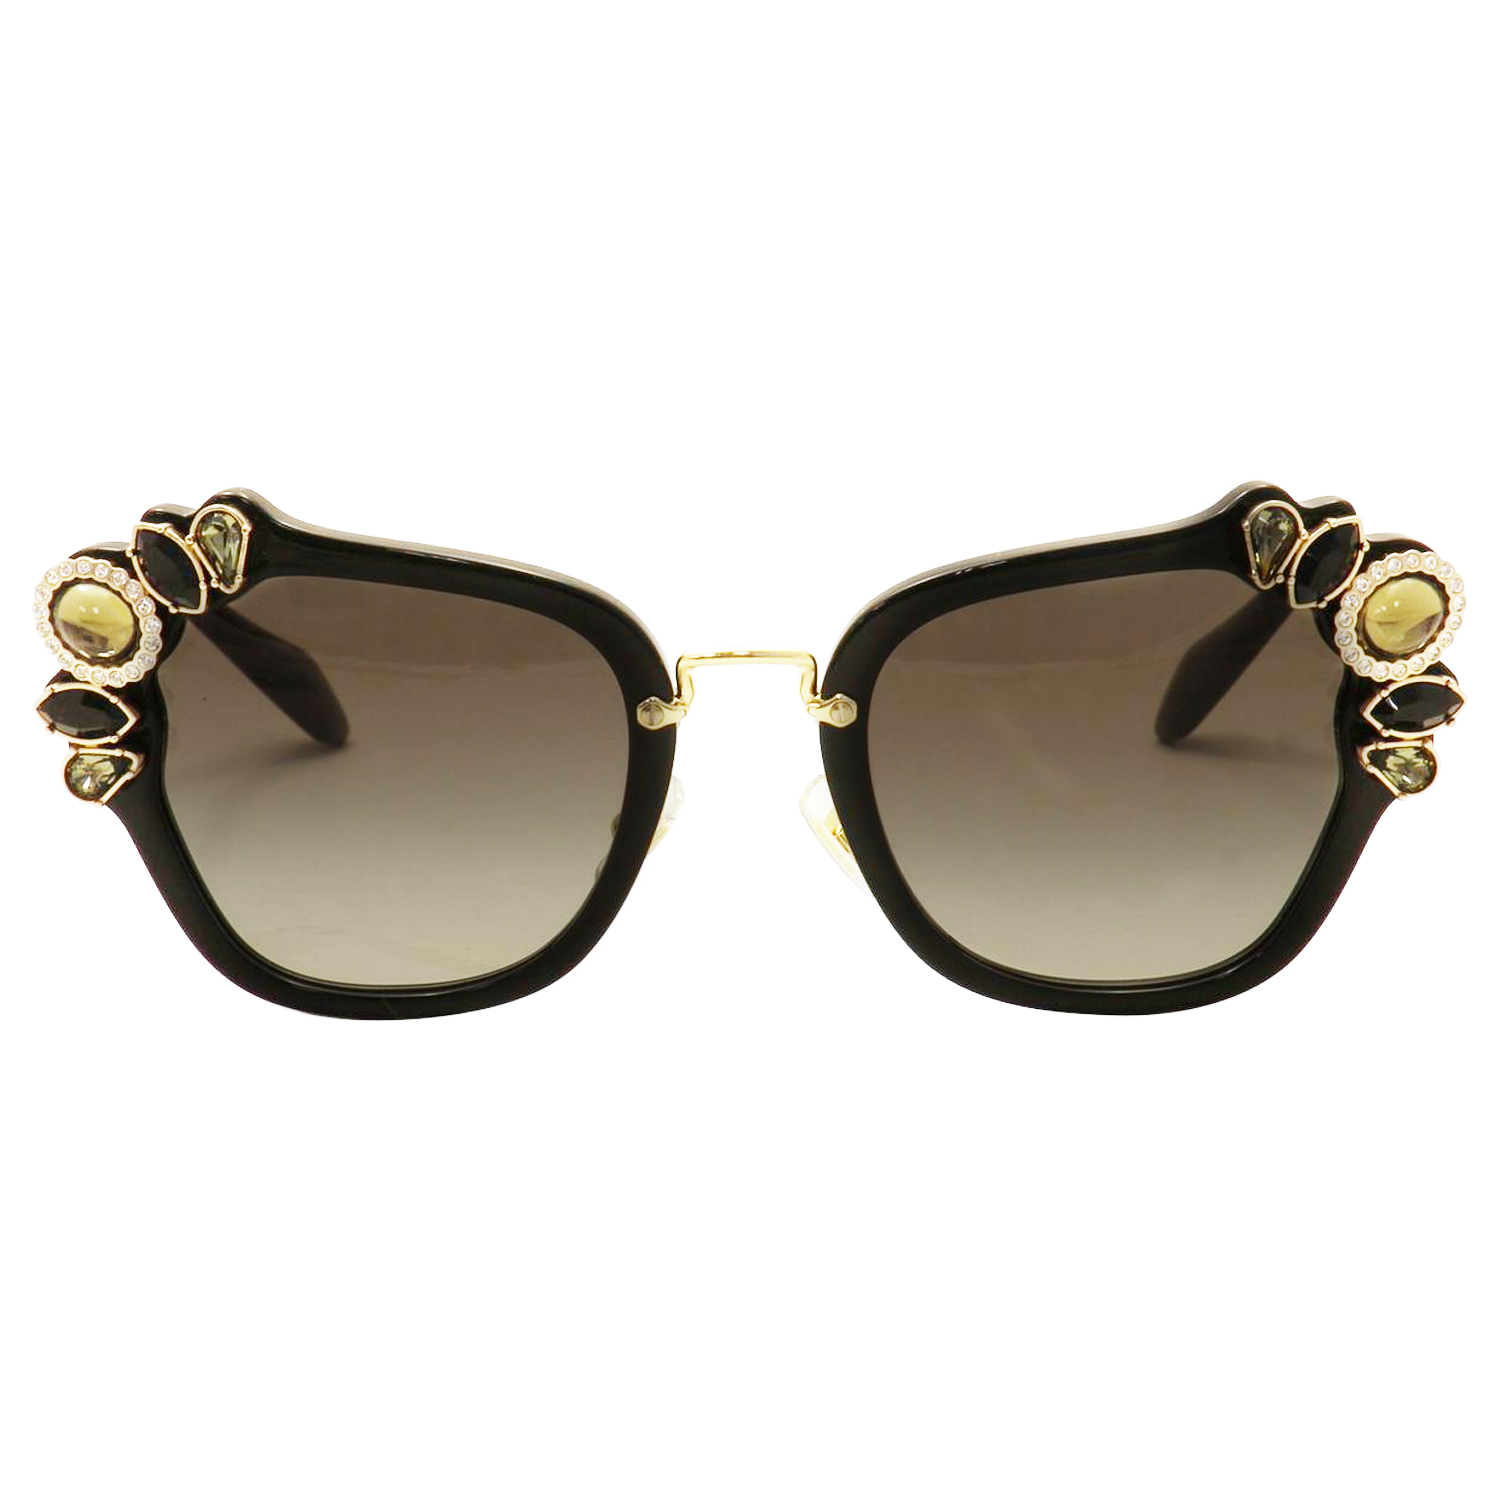 Lunettes de soleil Ray-Ban Aviator Classic RB3025 Monture or. 860.00 Dhs  1,800.00 Dhs. (0s). On Sale 3e419572a001